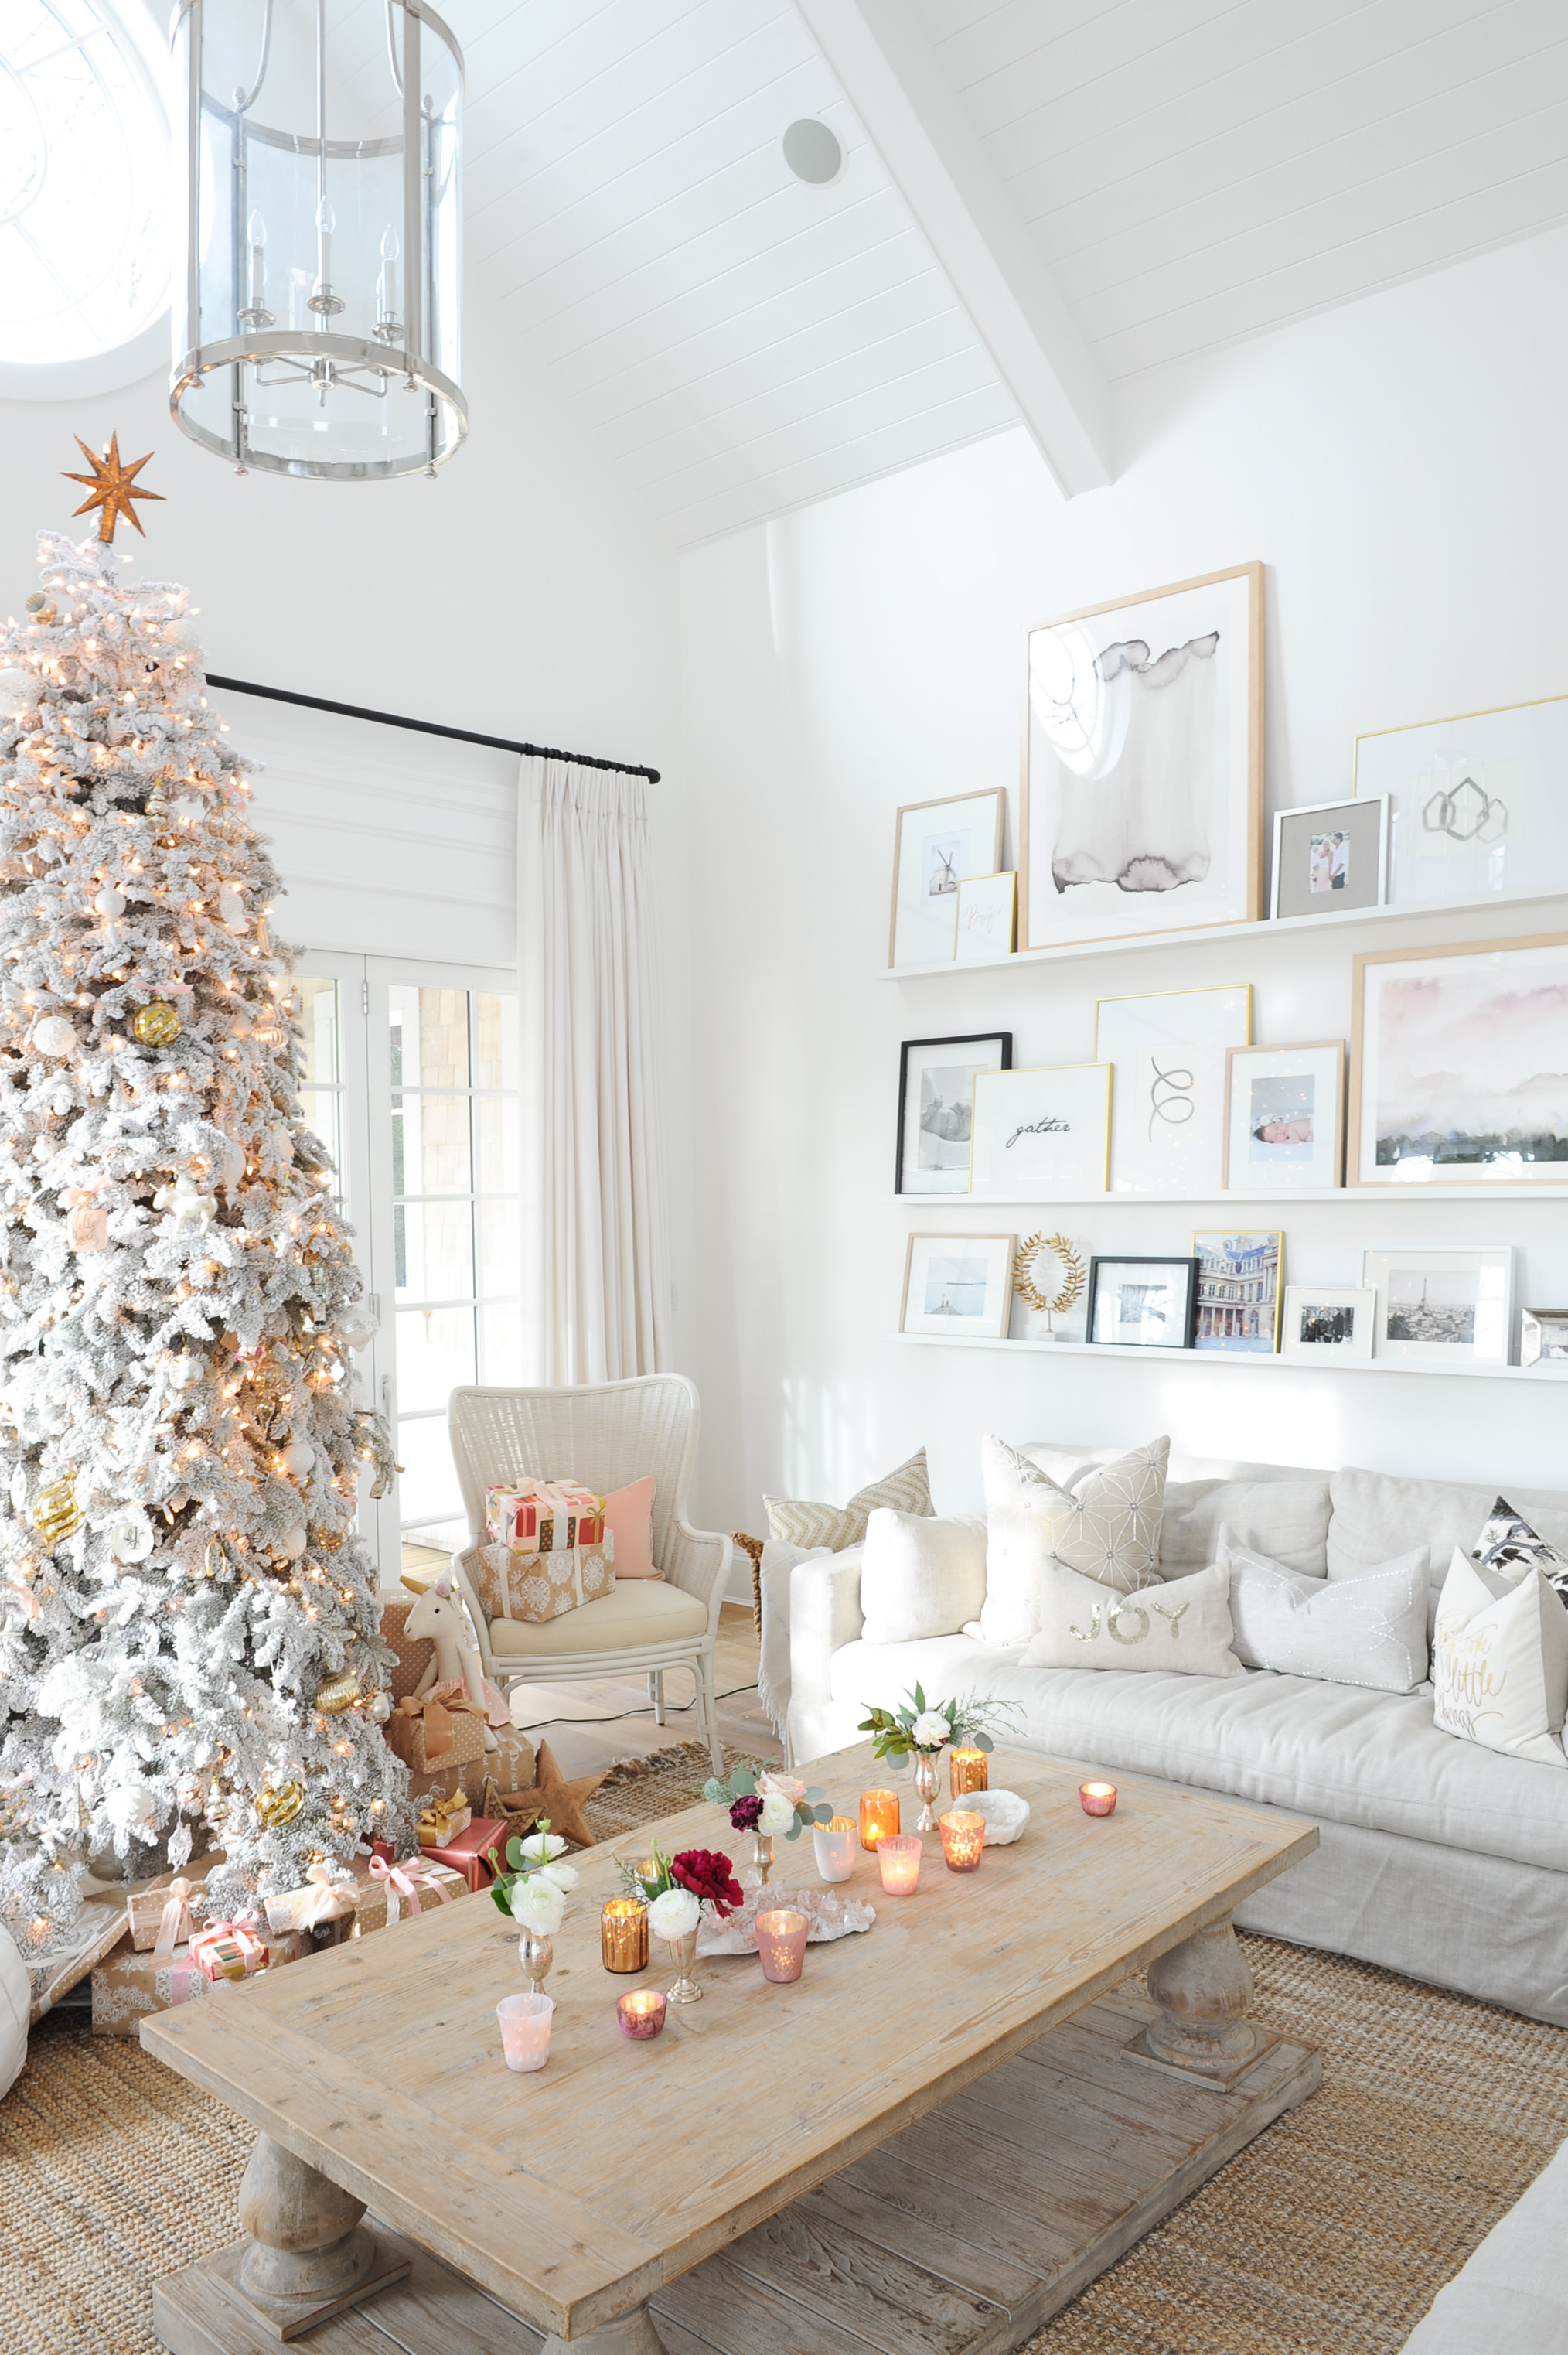 Flocked Christmas Tree in living room with gallery wall